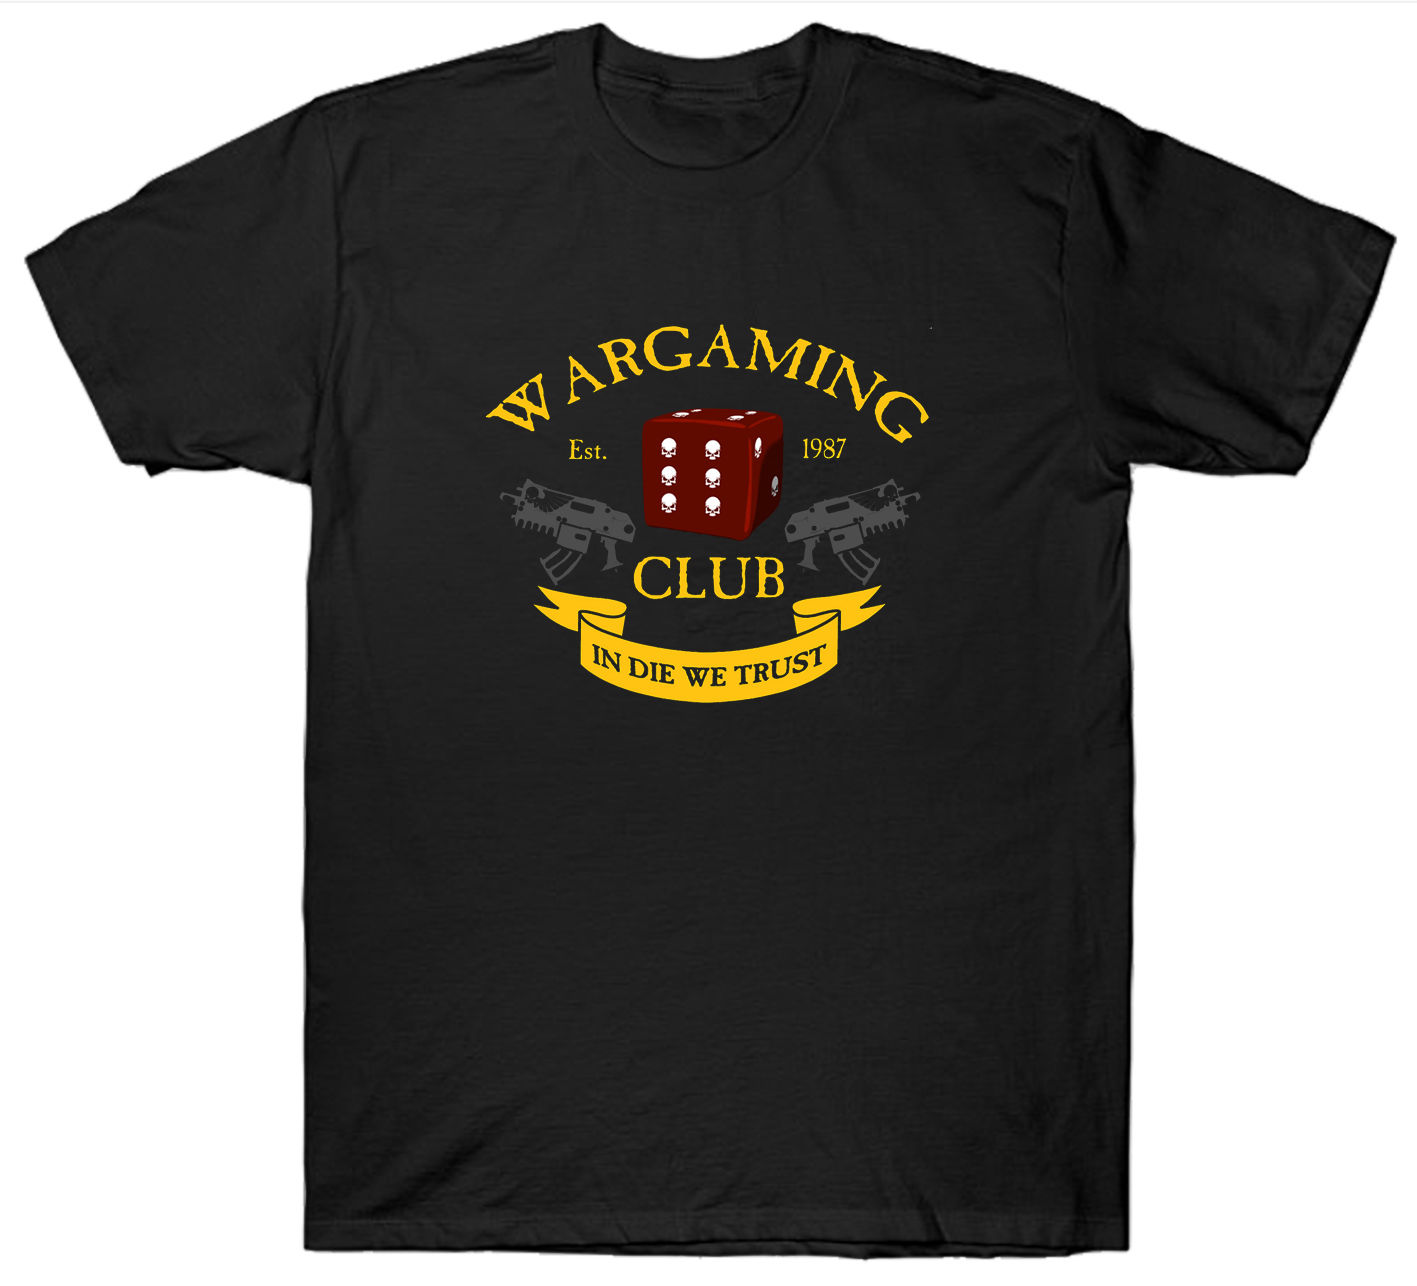 WARGAMING CLUB T SHIRT TOP WARGAMES WAR GAMES GAME GAMER O-Neck Oversize Style T-Shirts Styles Comfortable Top Tee Plus Size image